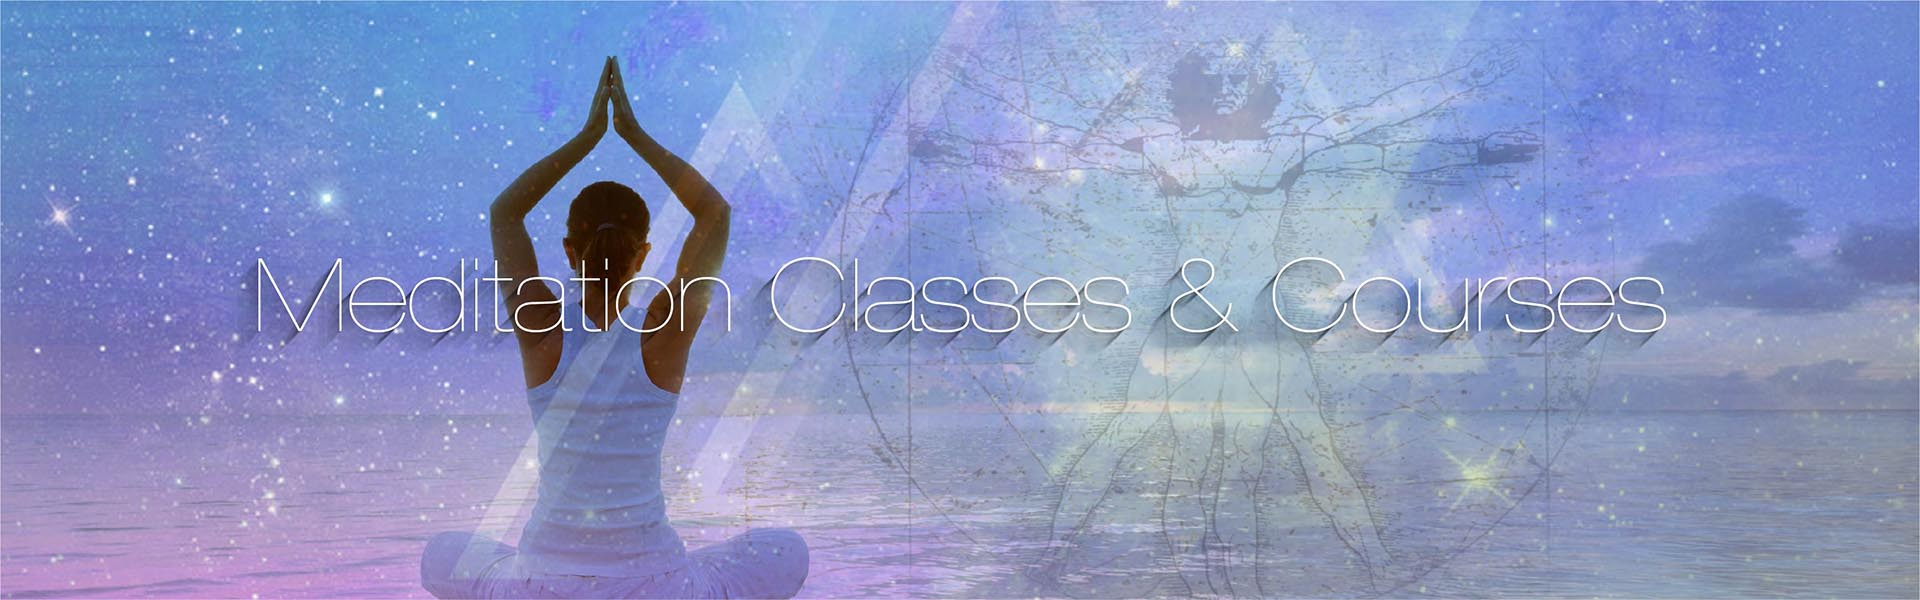 Meditation classes and courses